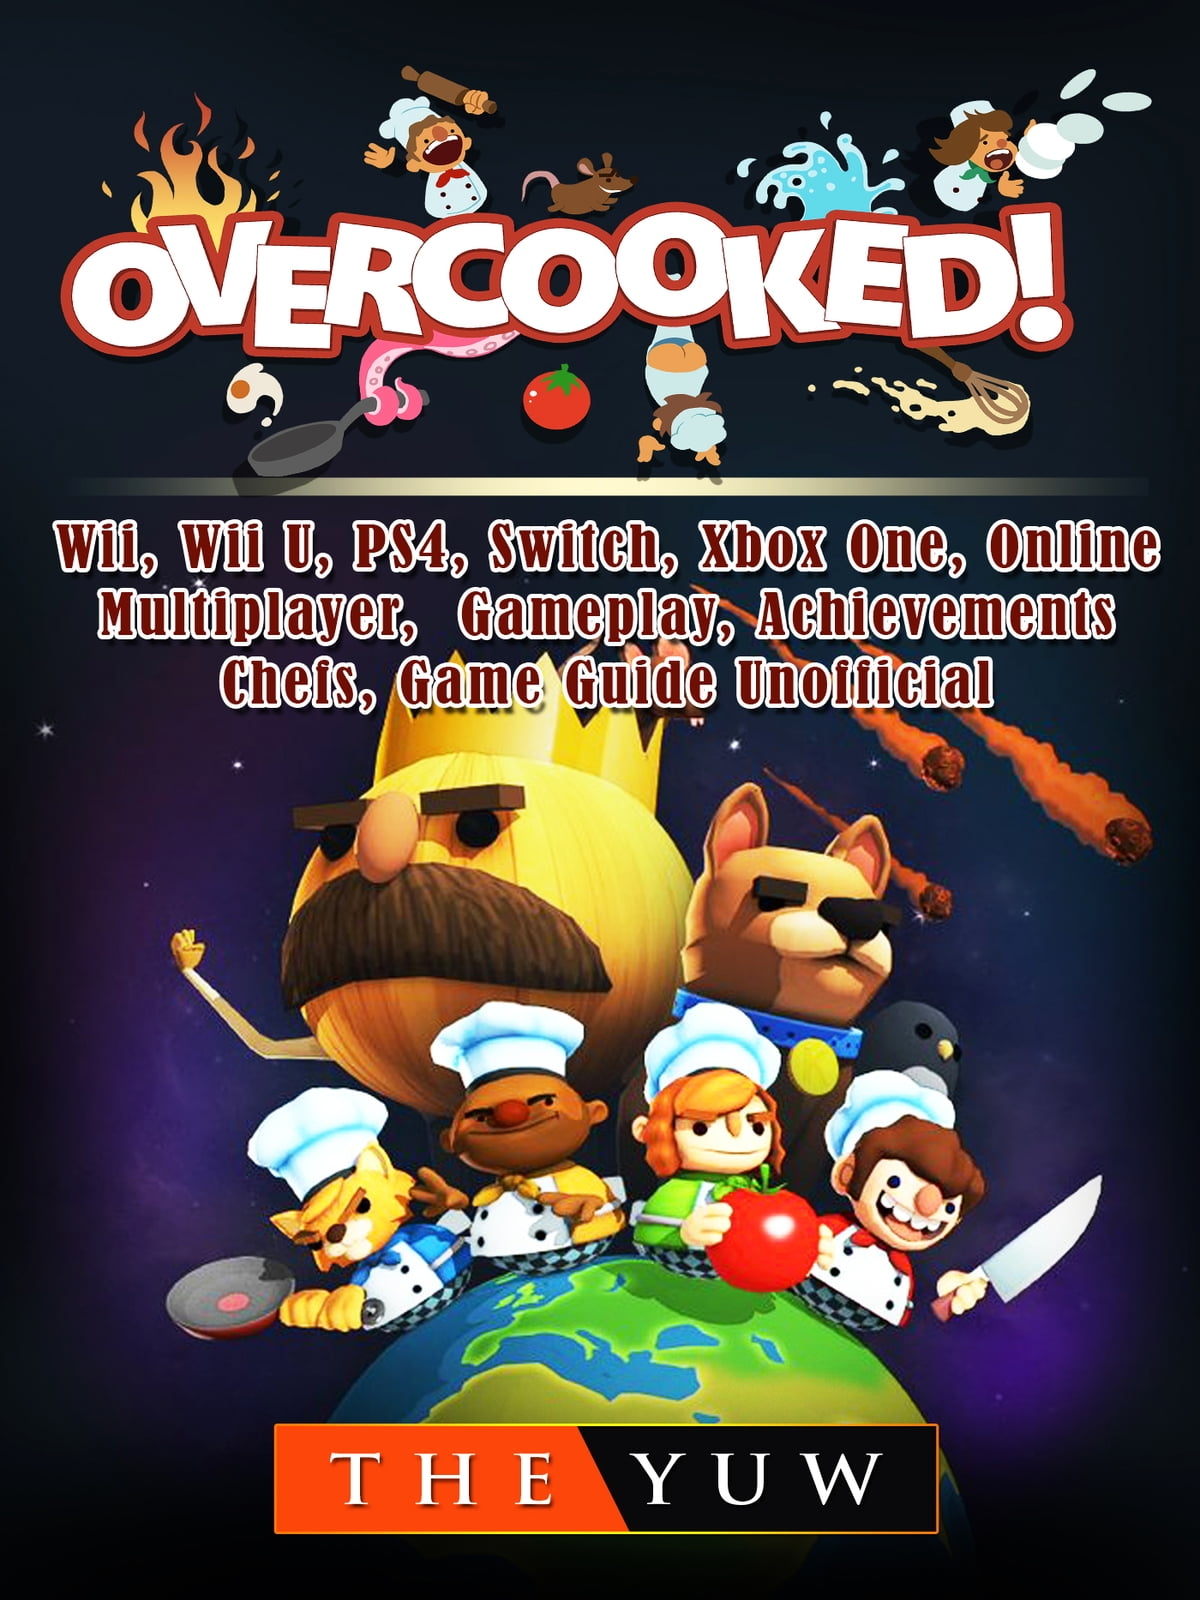 Overcooked Wii Wii U Ps4 Switch Xbox One Online Multiplayer